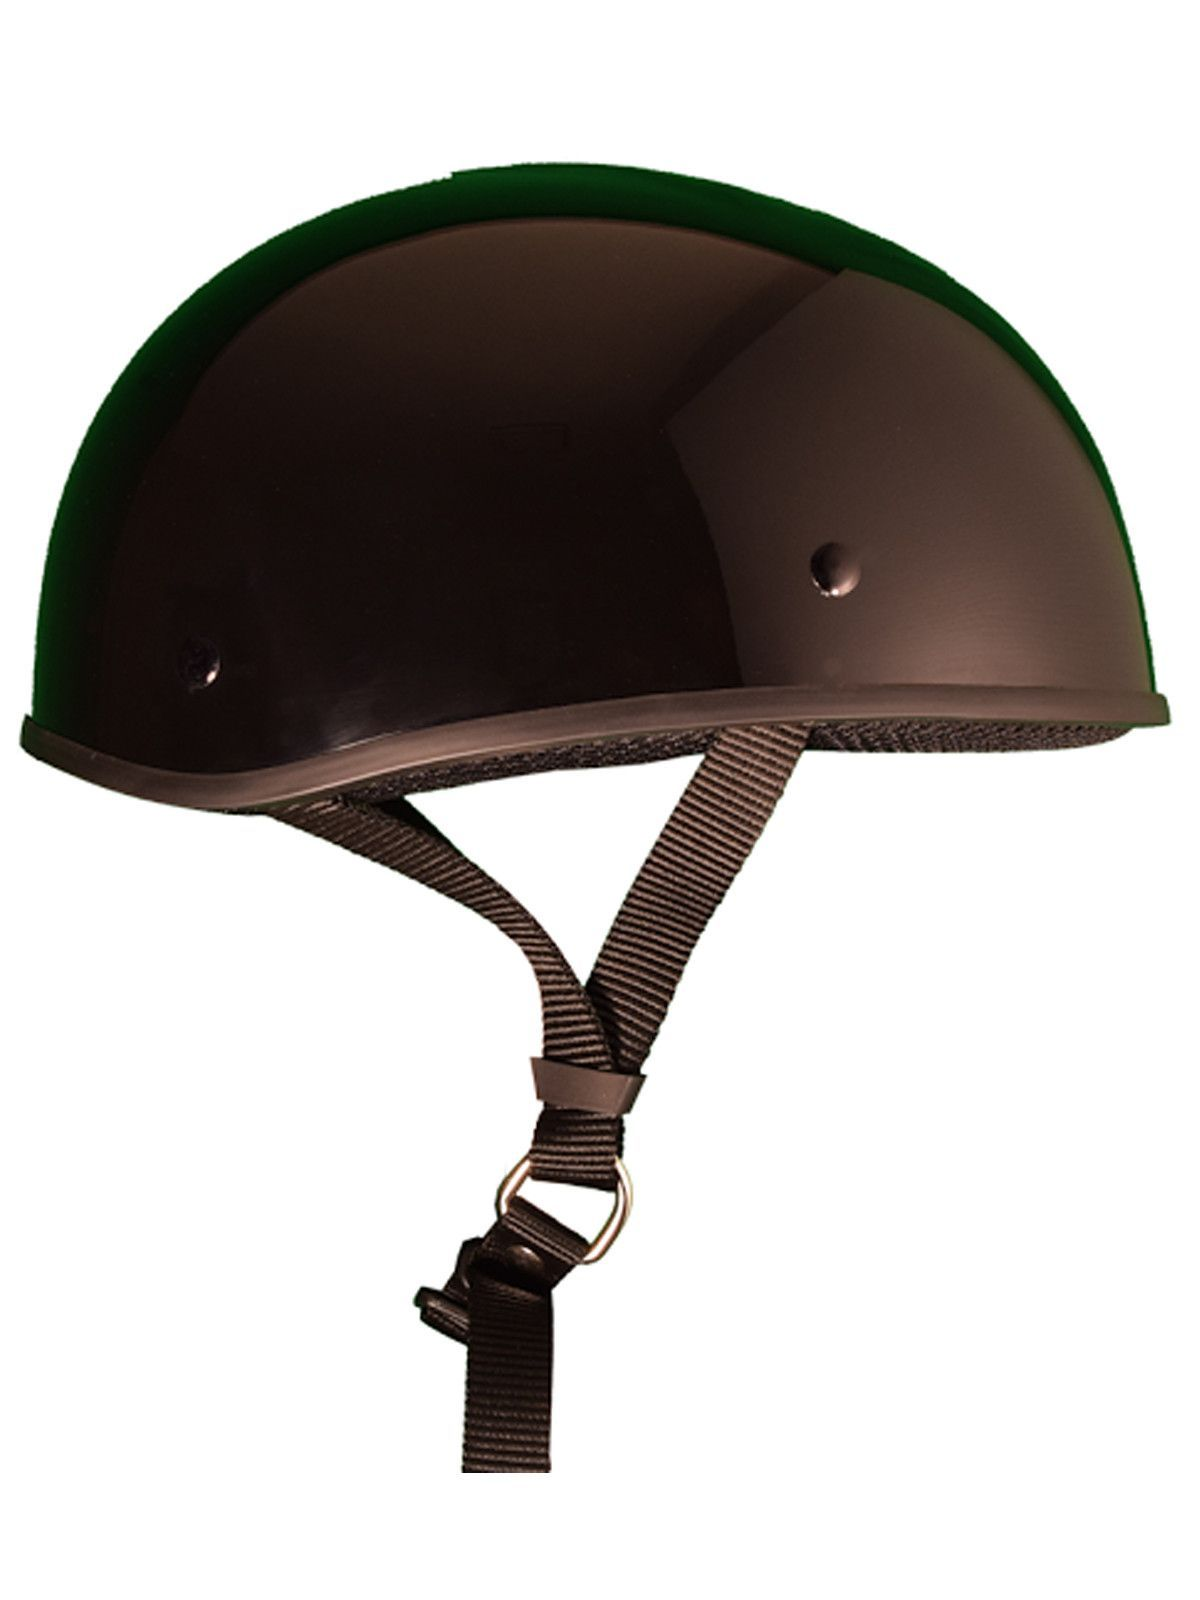 What Is The Smallest Size Riding Hat